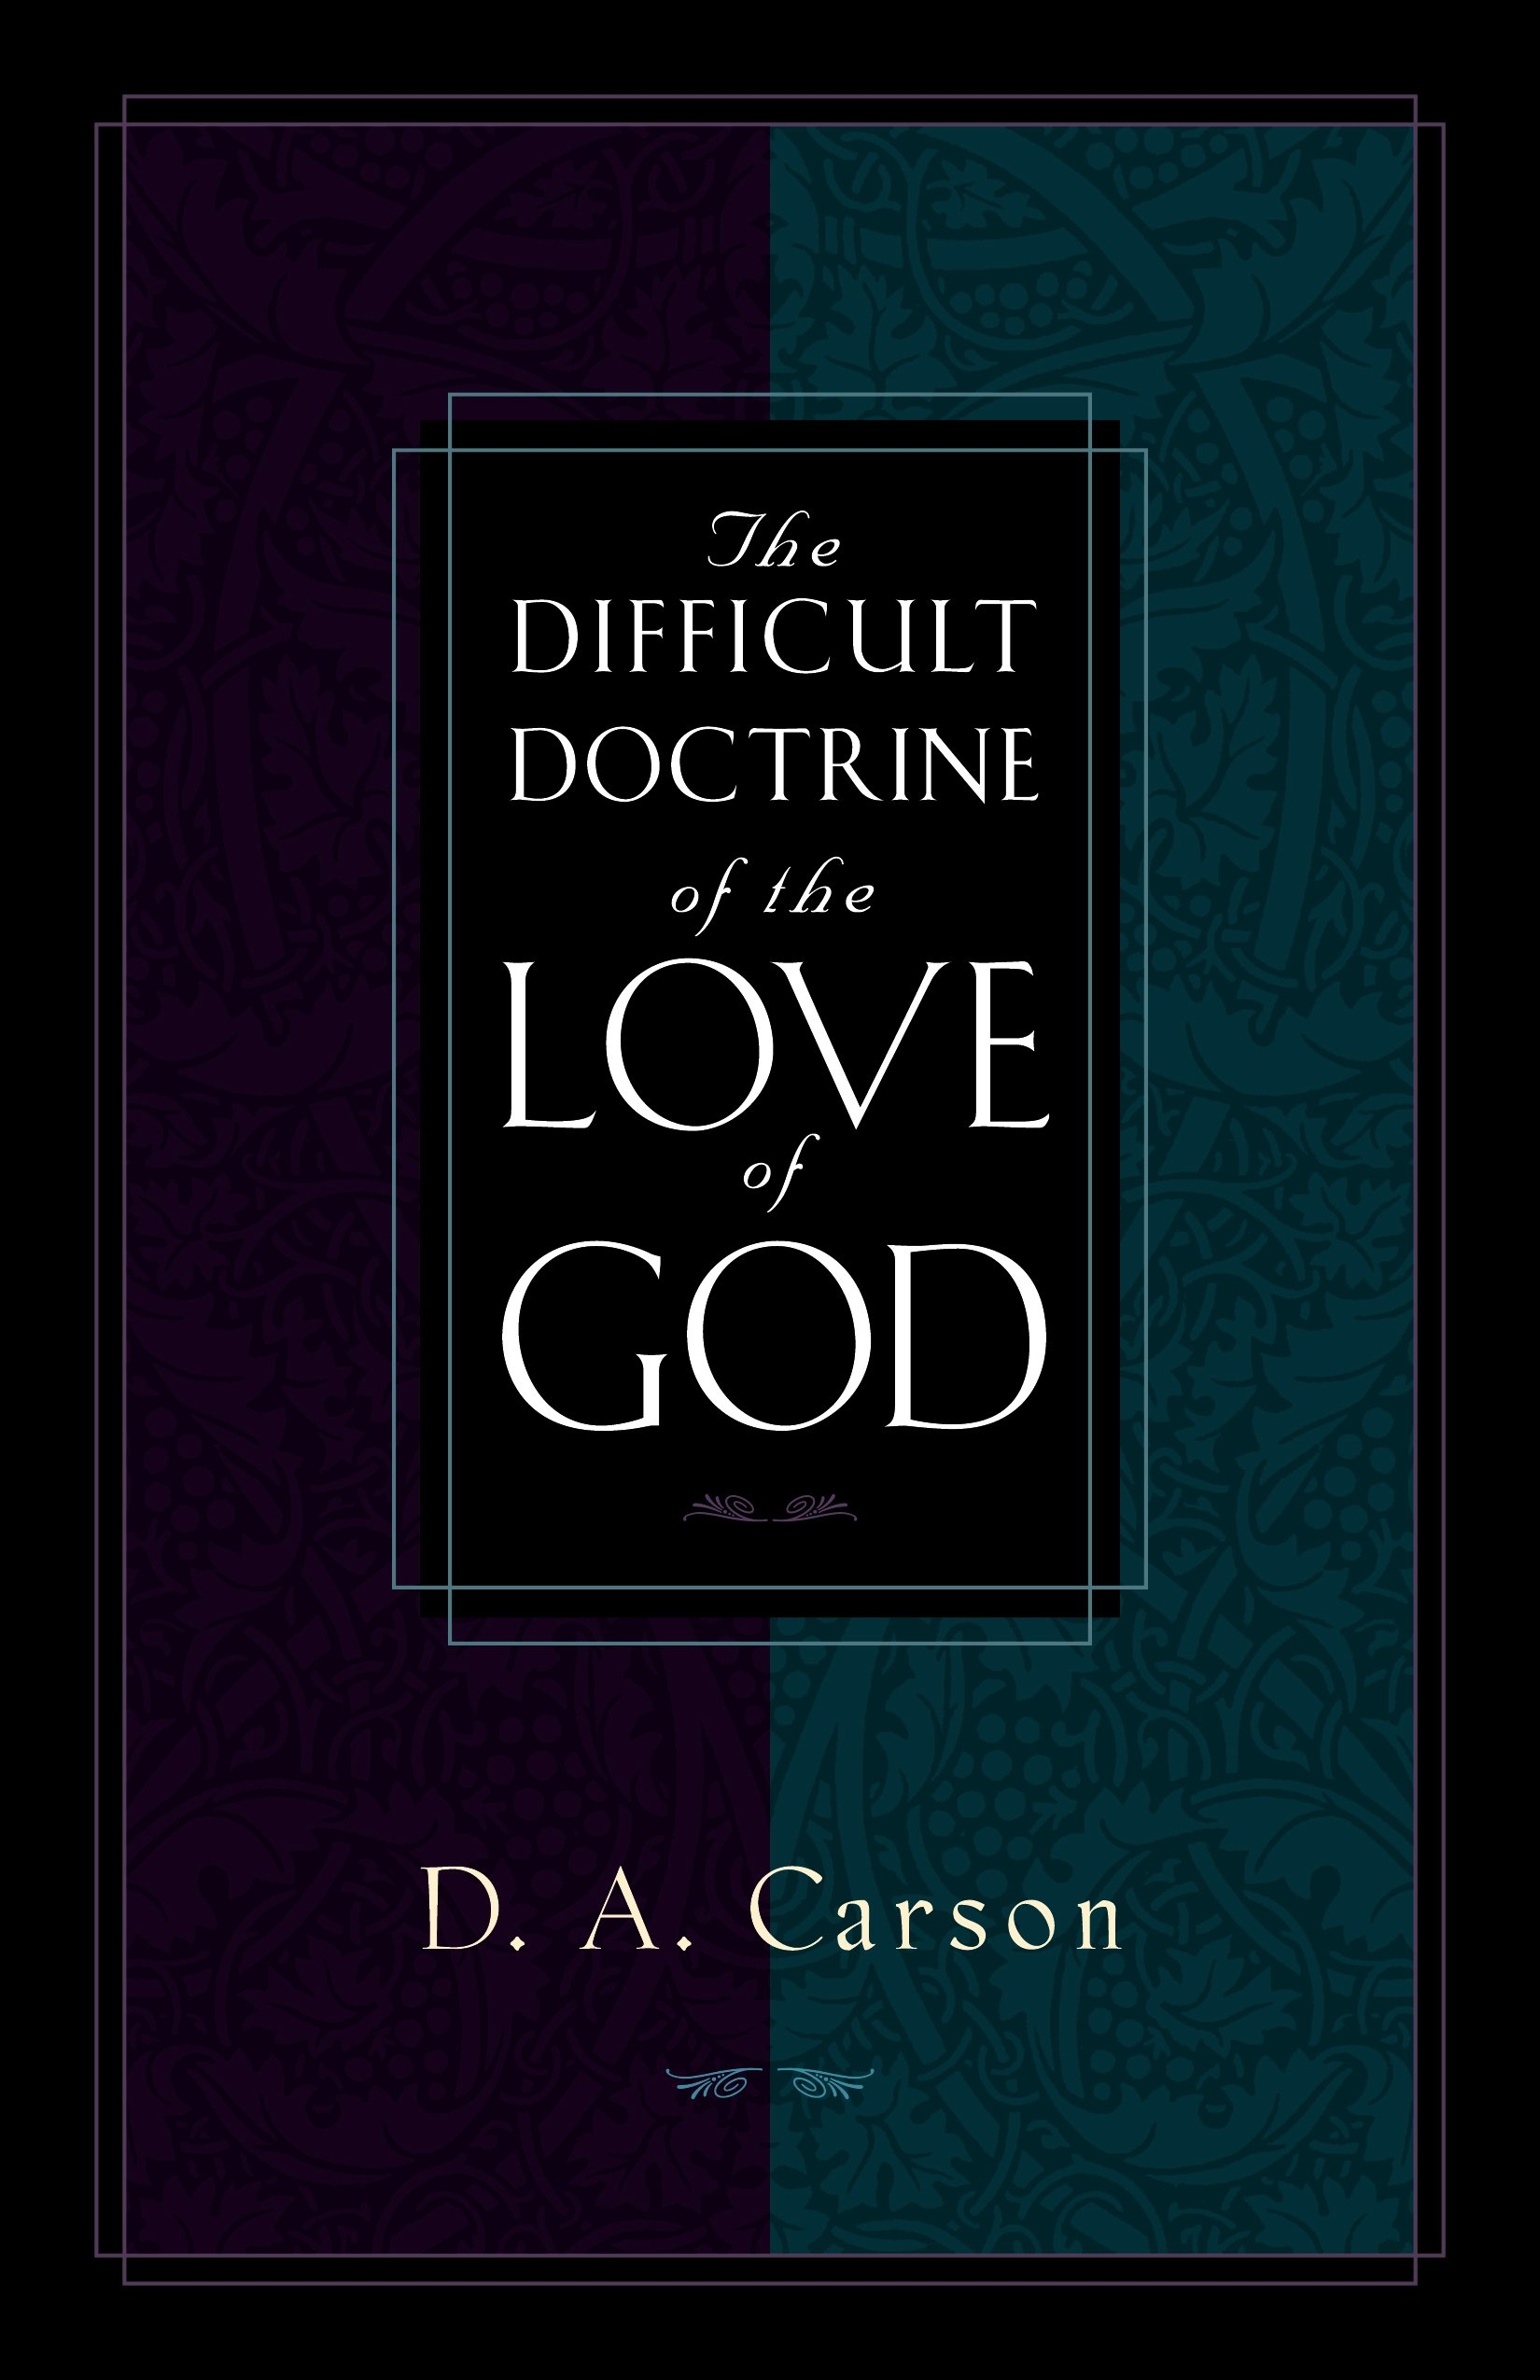 The Difficult Doctrine of the Love of God by D. A. Carson